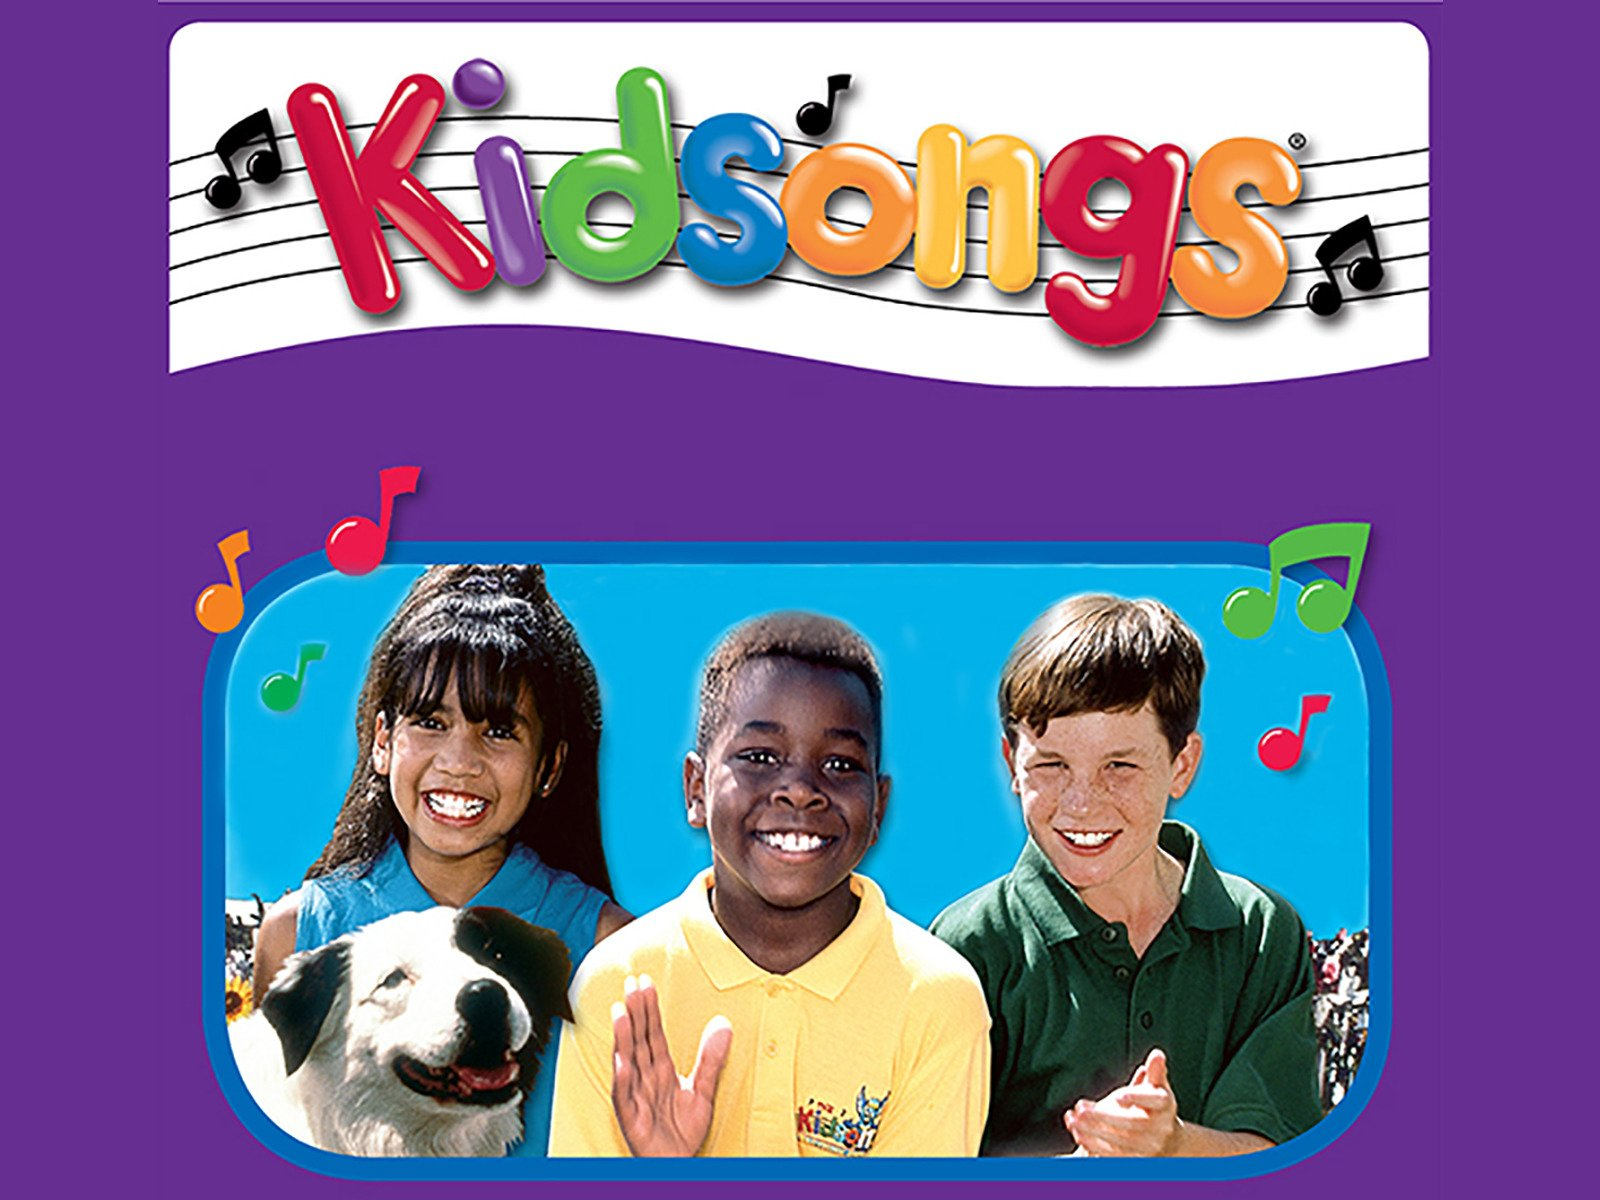 Amazon.com: Kidsongs: Steven Brooks, Adanelly Camacho, Bruce Gowers ...